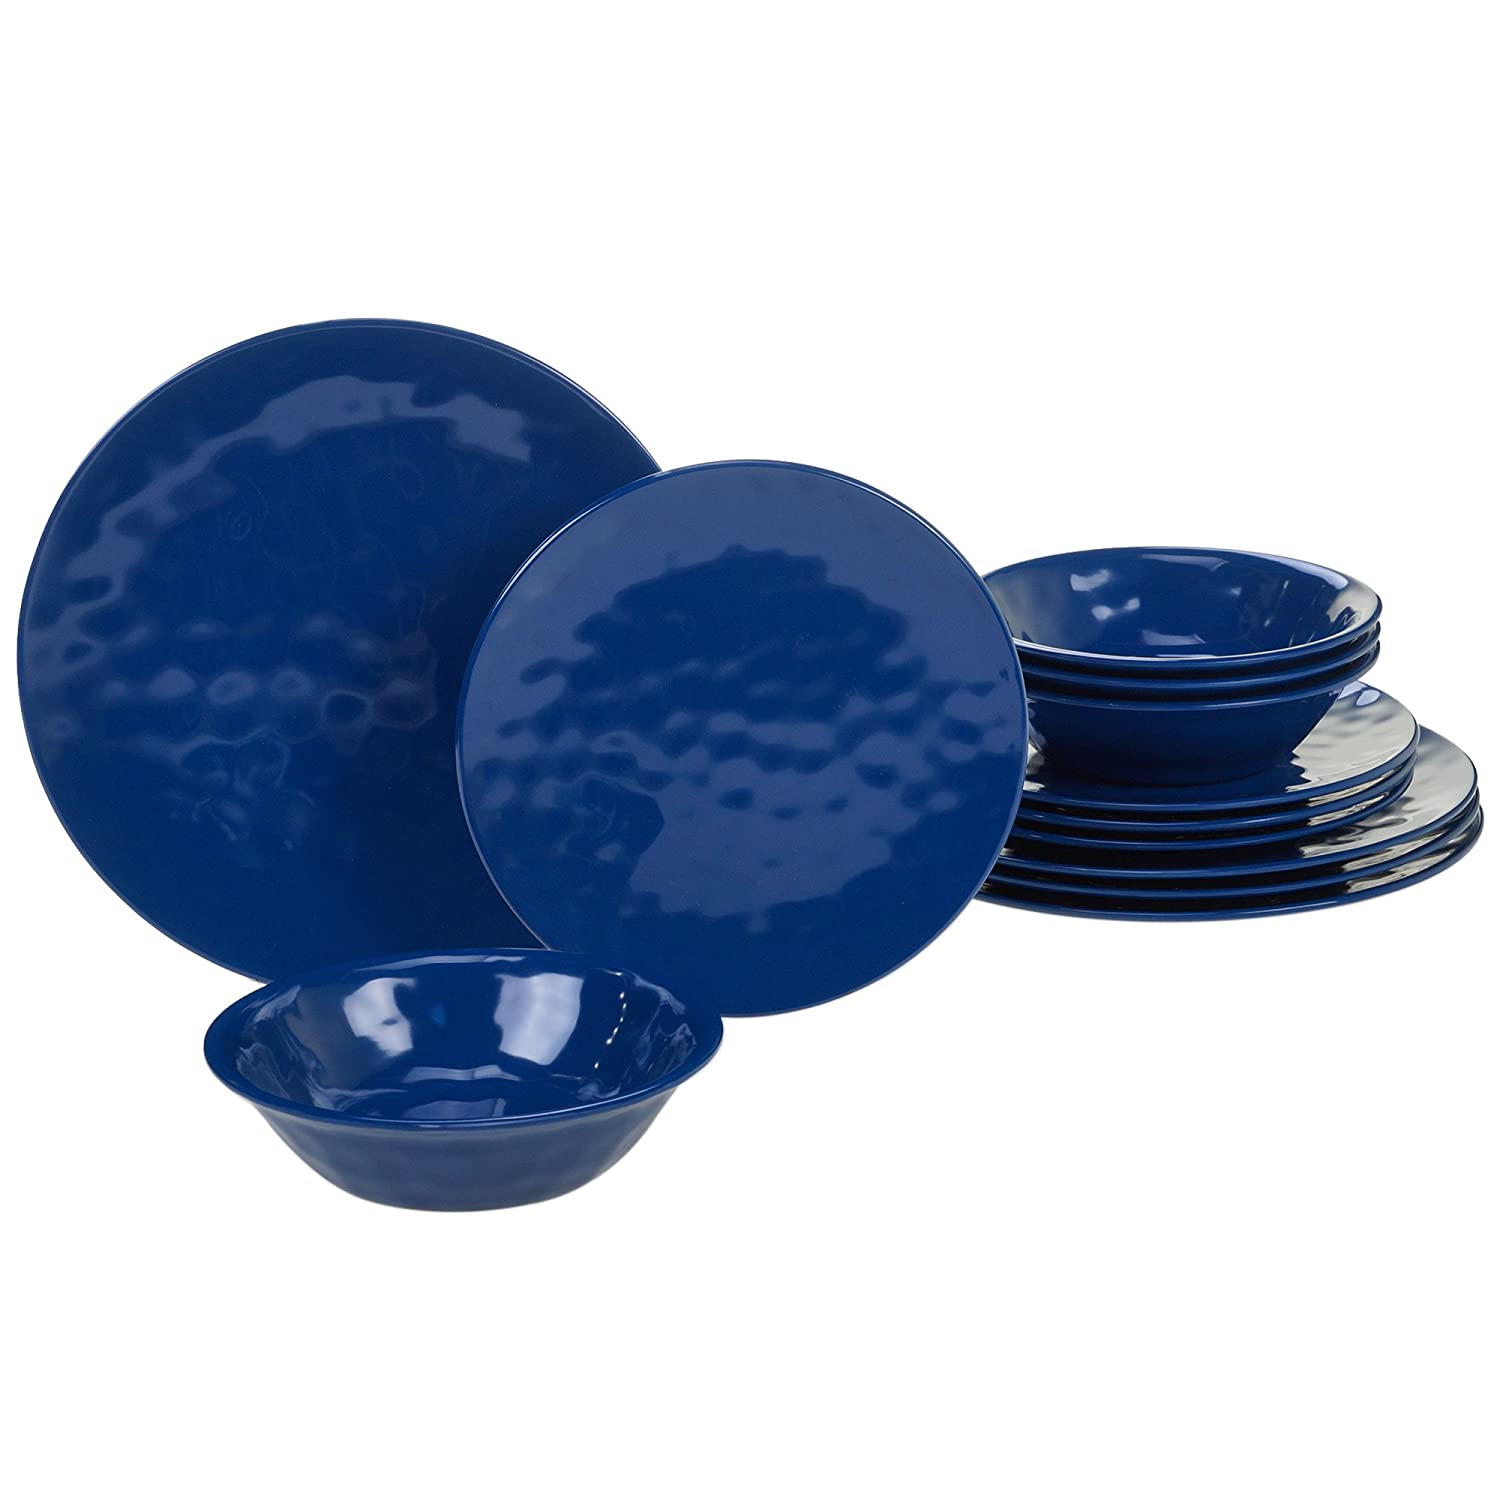 Certified International 89211RM Melamine 12 pc Dinnerware Set, Service for 4, Cobalt Blue